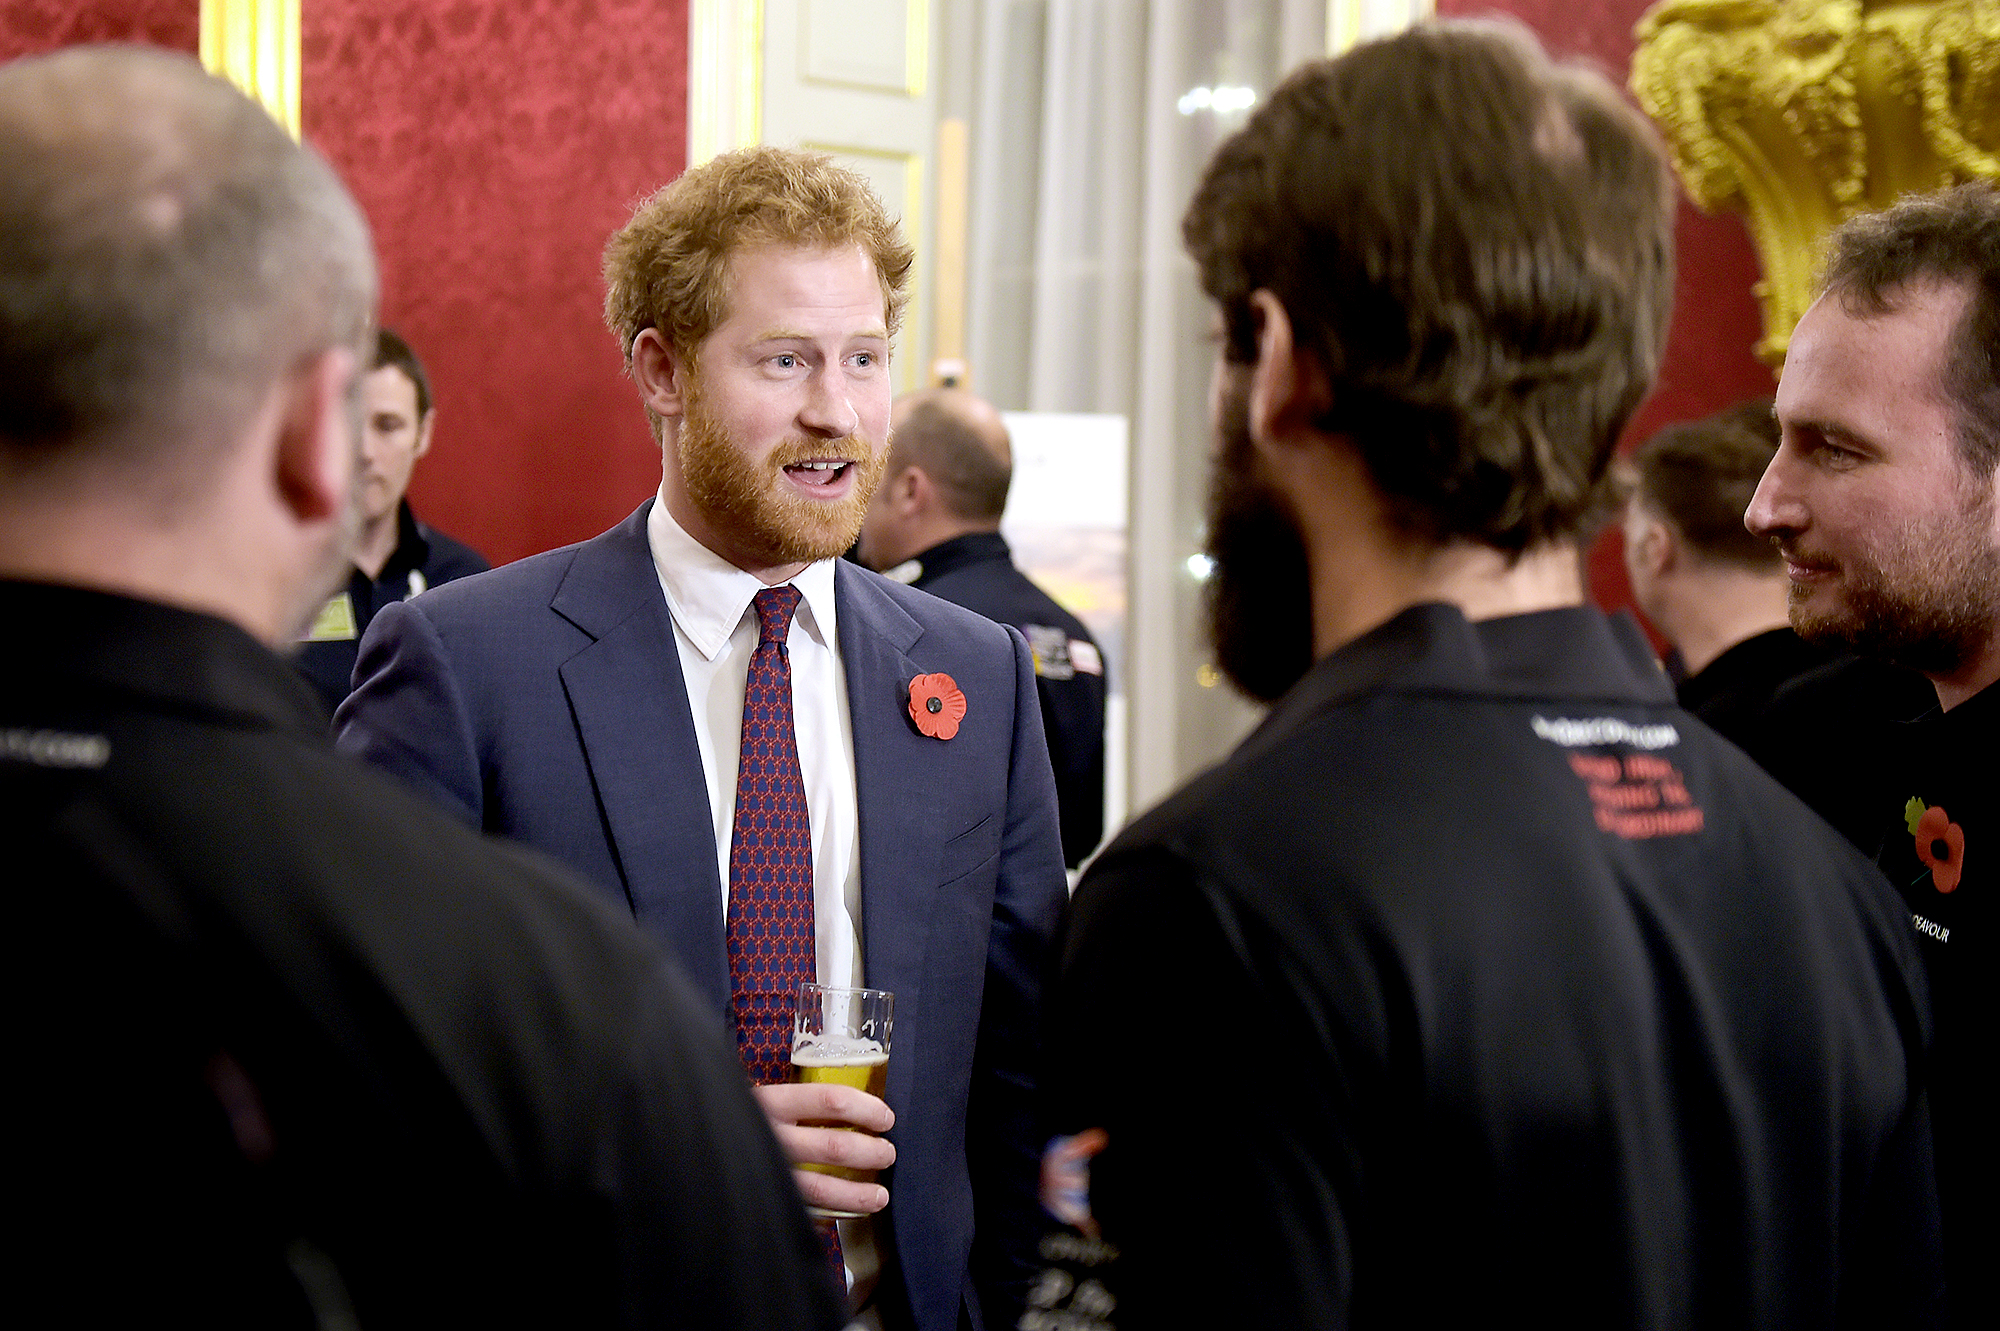 A-Beer-in-the-Palace-prince-harry - Though the royal family isn't exactly encouraged to drink, Prince Harry had a pint in hand while attending a reception for The Endeavor Fund (of which he is a patron) at St. James's Palace in London in November 2015.